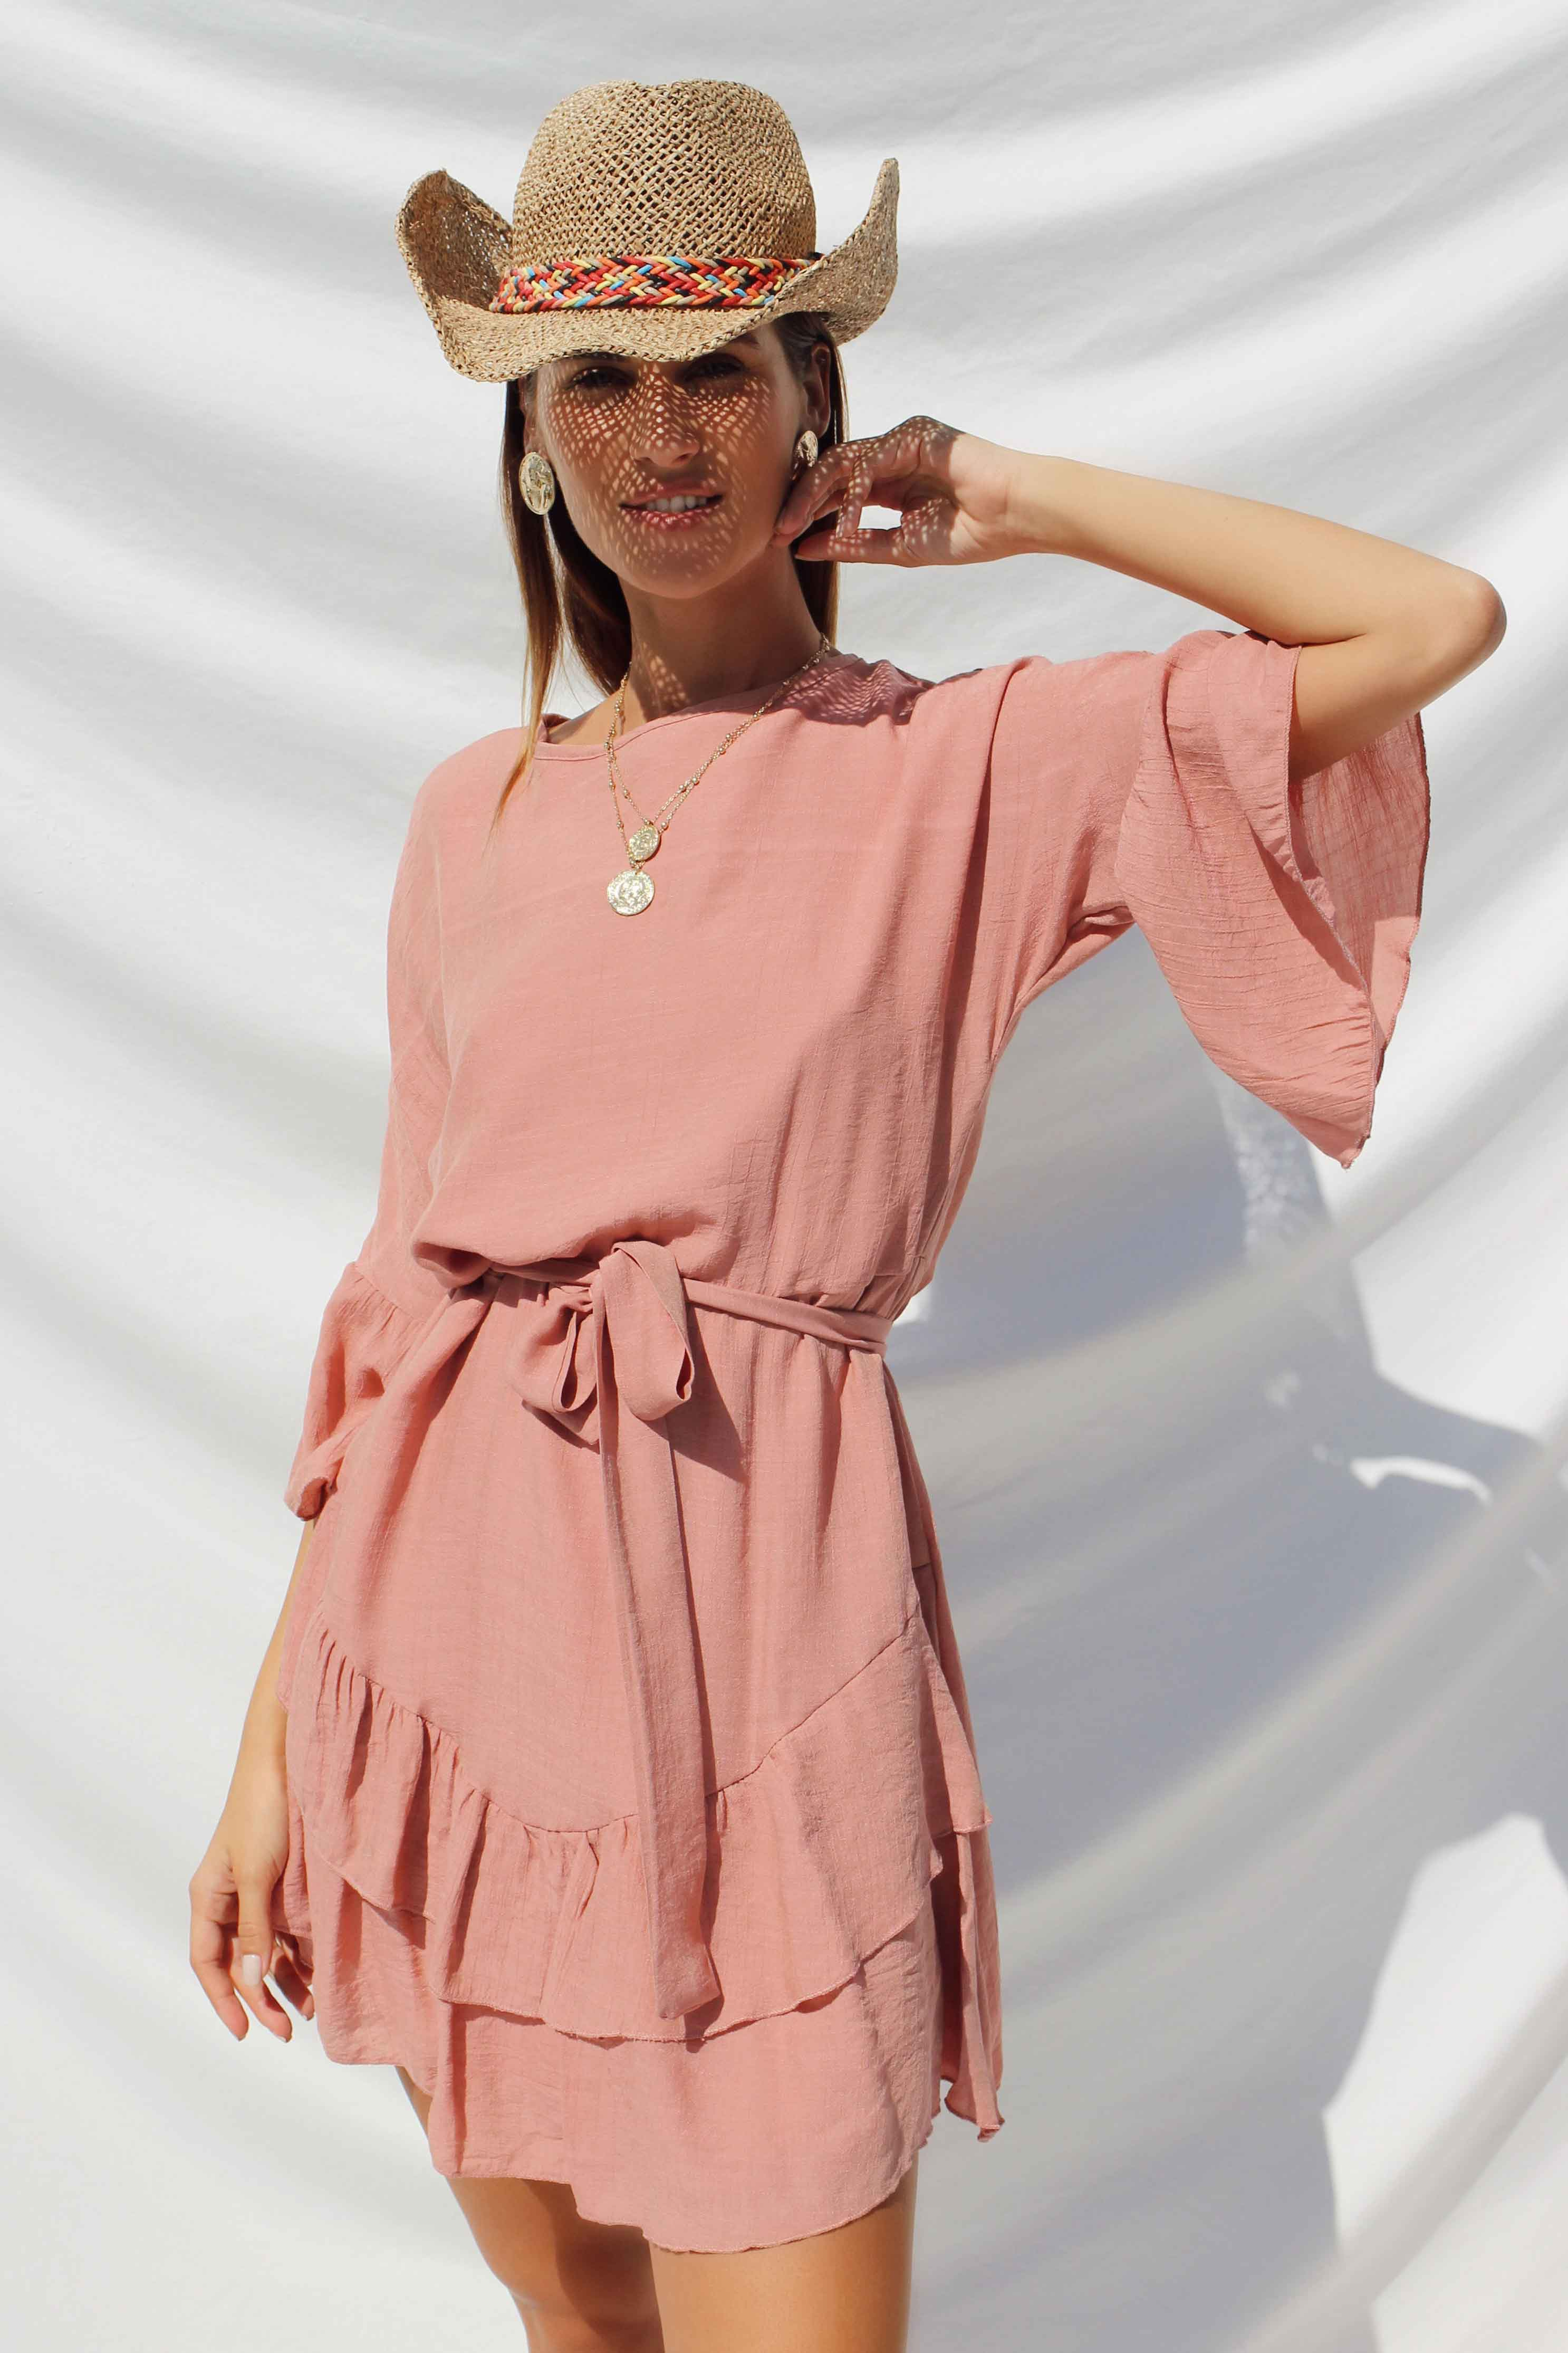 COASTAL DRESS - Chic Le Frique